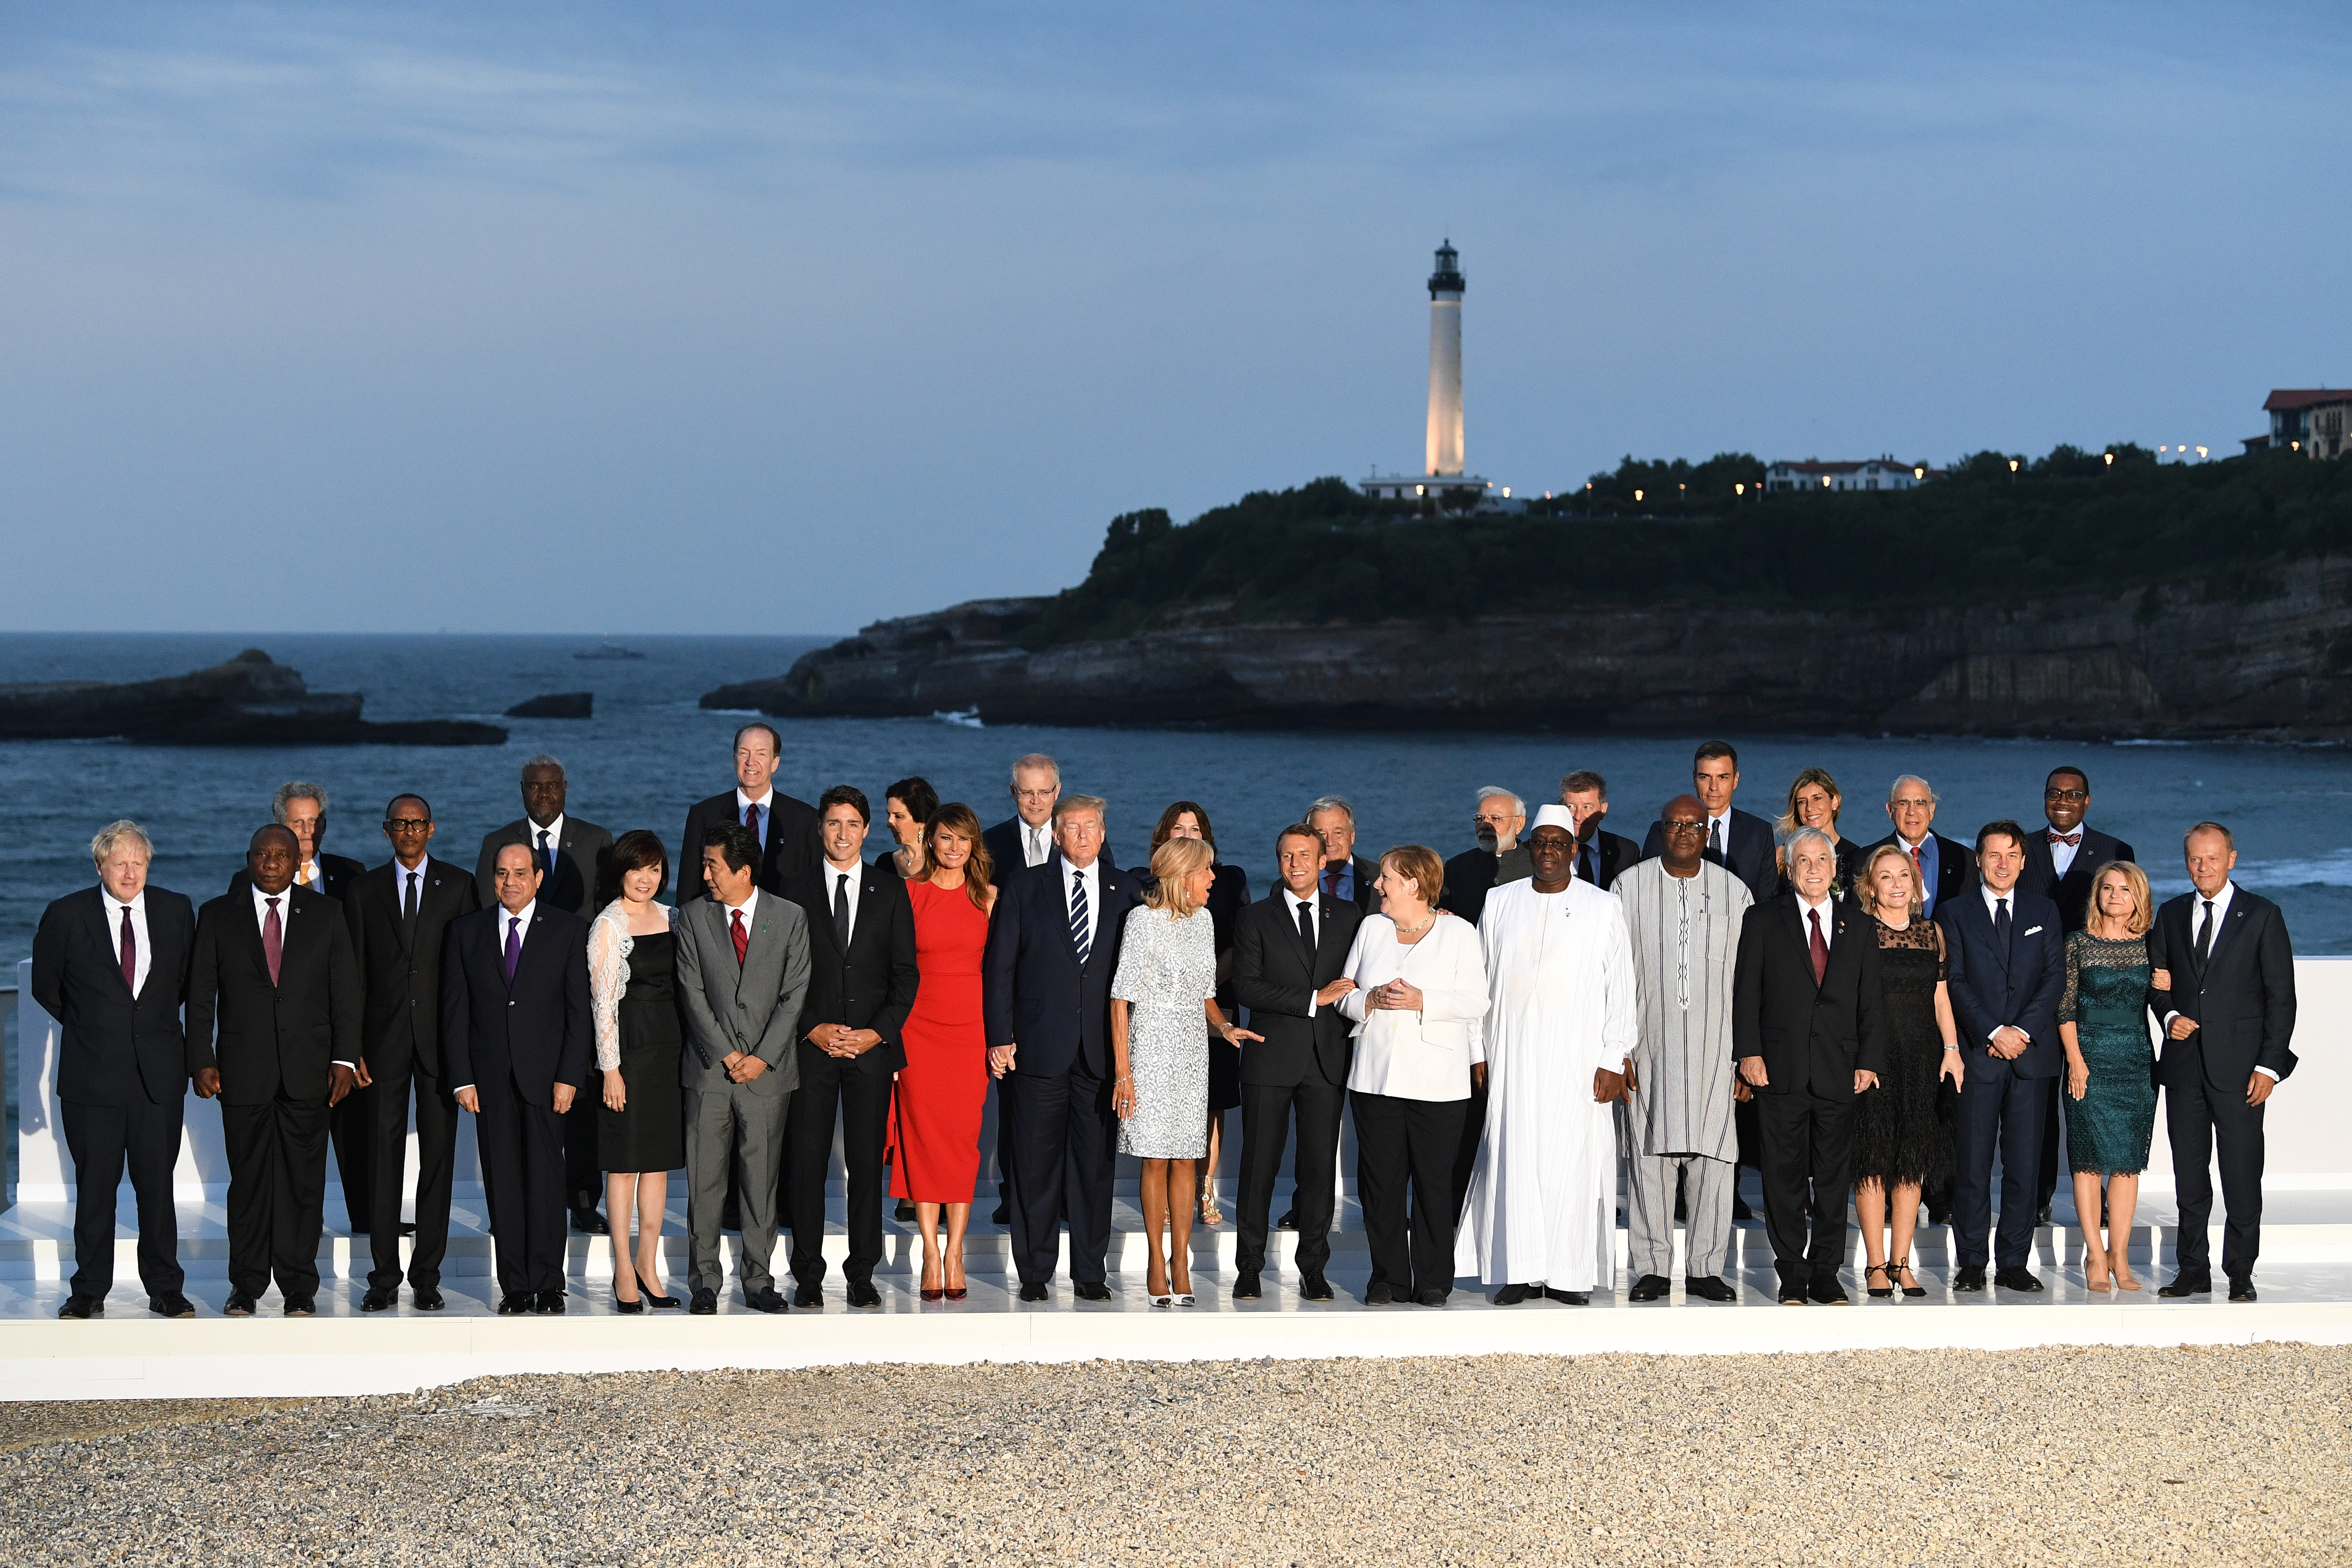 BIARRITZ, FRANCE - AUGUST 25: G7 leaders and guests pose for a family picture with the Biarritz lighthouse in the background on the second day of the annual G7 summit: (First row) L-R Britain's Prime Minister Boris Johnson, South Africa's President Cyril Ramaphosa, Rwanda's President Paul Kagame, African Union Chair Egyptian President Abdel Fattah el-Sisi, Japanese Prime Minister's wife Akie Abe, Japan's Prime Minister Shinzo Abe, Canada's Prime Minister Justin Trudeau, US First Lady Melania Trump, US President Donald Trump, French President's wife Brigitte Macron, France's President Emmanuel Macron, Germany's Chancellor Angela Merkel, Senegal's President Macky Sall, Burkina Faso's President Roch Marc Christian Kabore, Chile's President Sebastian Pinera, his wife Cecilia Morel, Italy's Prime Minister Giuseppe Conte, EU Council President's wife Malgorzata Tusk, European Council President Donald Tusk. (Second row) Chairperson of the African Union Commission Moussa Faki Mahamat (2nd,L), Australian Prime Minister Scott Morrison (5th, L) his wife Jenny Morrison, United Nations Secretary-General Antonio Guterres (7th,R), India's Prime Minister Narendra Modi (6th,R), Spain's Prime Minister Pedro Sanchez (4th,R), Spanish Prime Minister's wife Begona Sanchez (3rd,R), OECD Secretary-General Jose Angel Gurria (2nd,R), African Development Bank president Akinwumi Adesina (R) on August 25, 2019 in Biarritz, France. (Photo by Andrew Parsons/Getty Images)